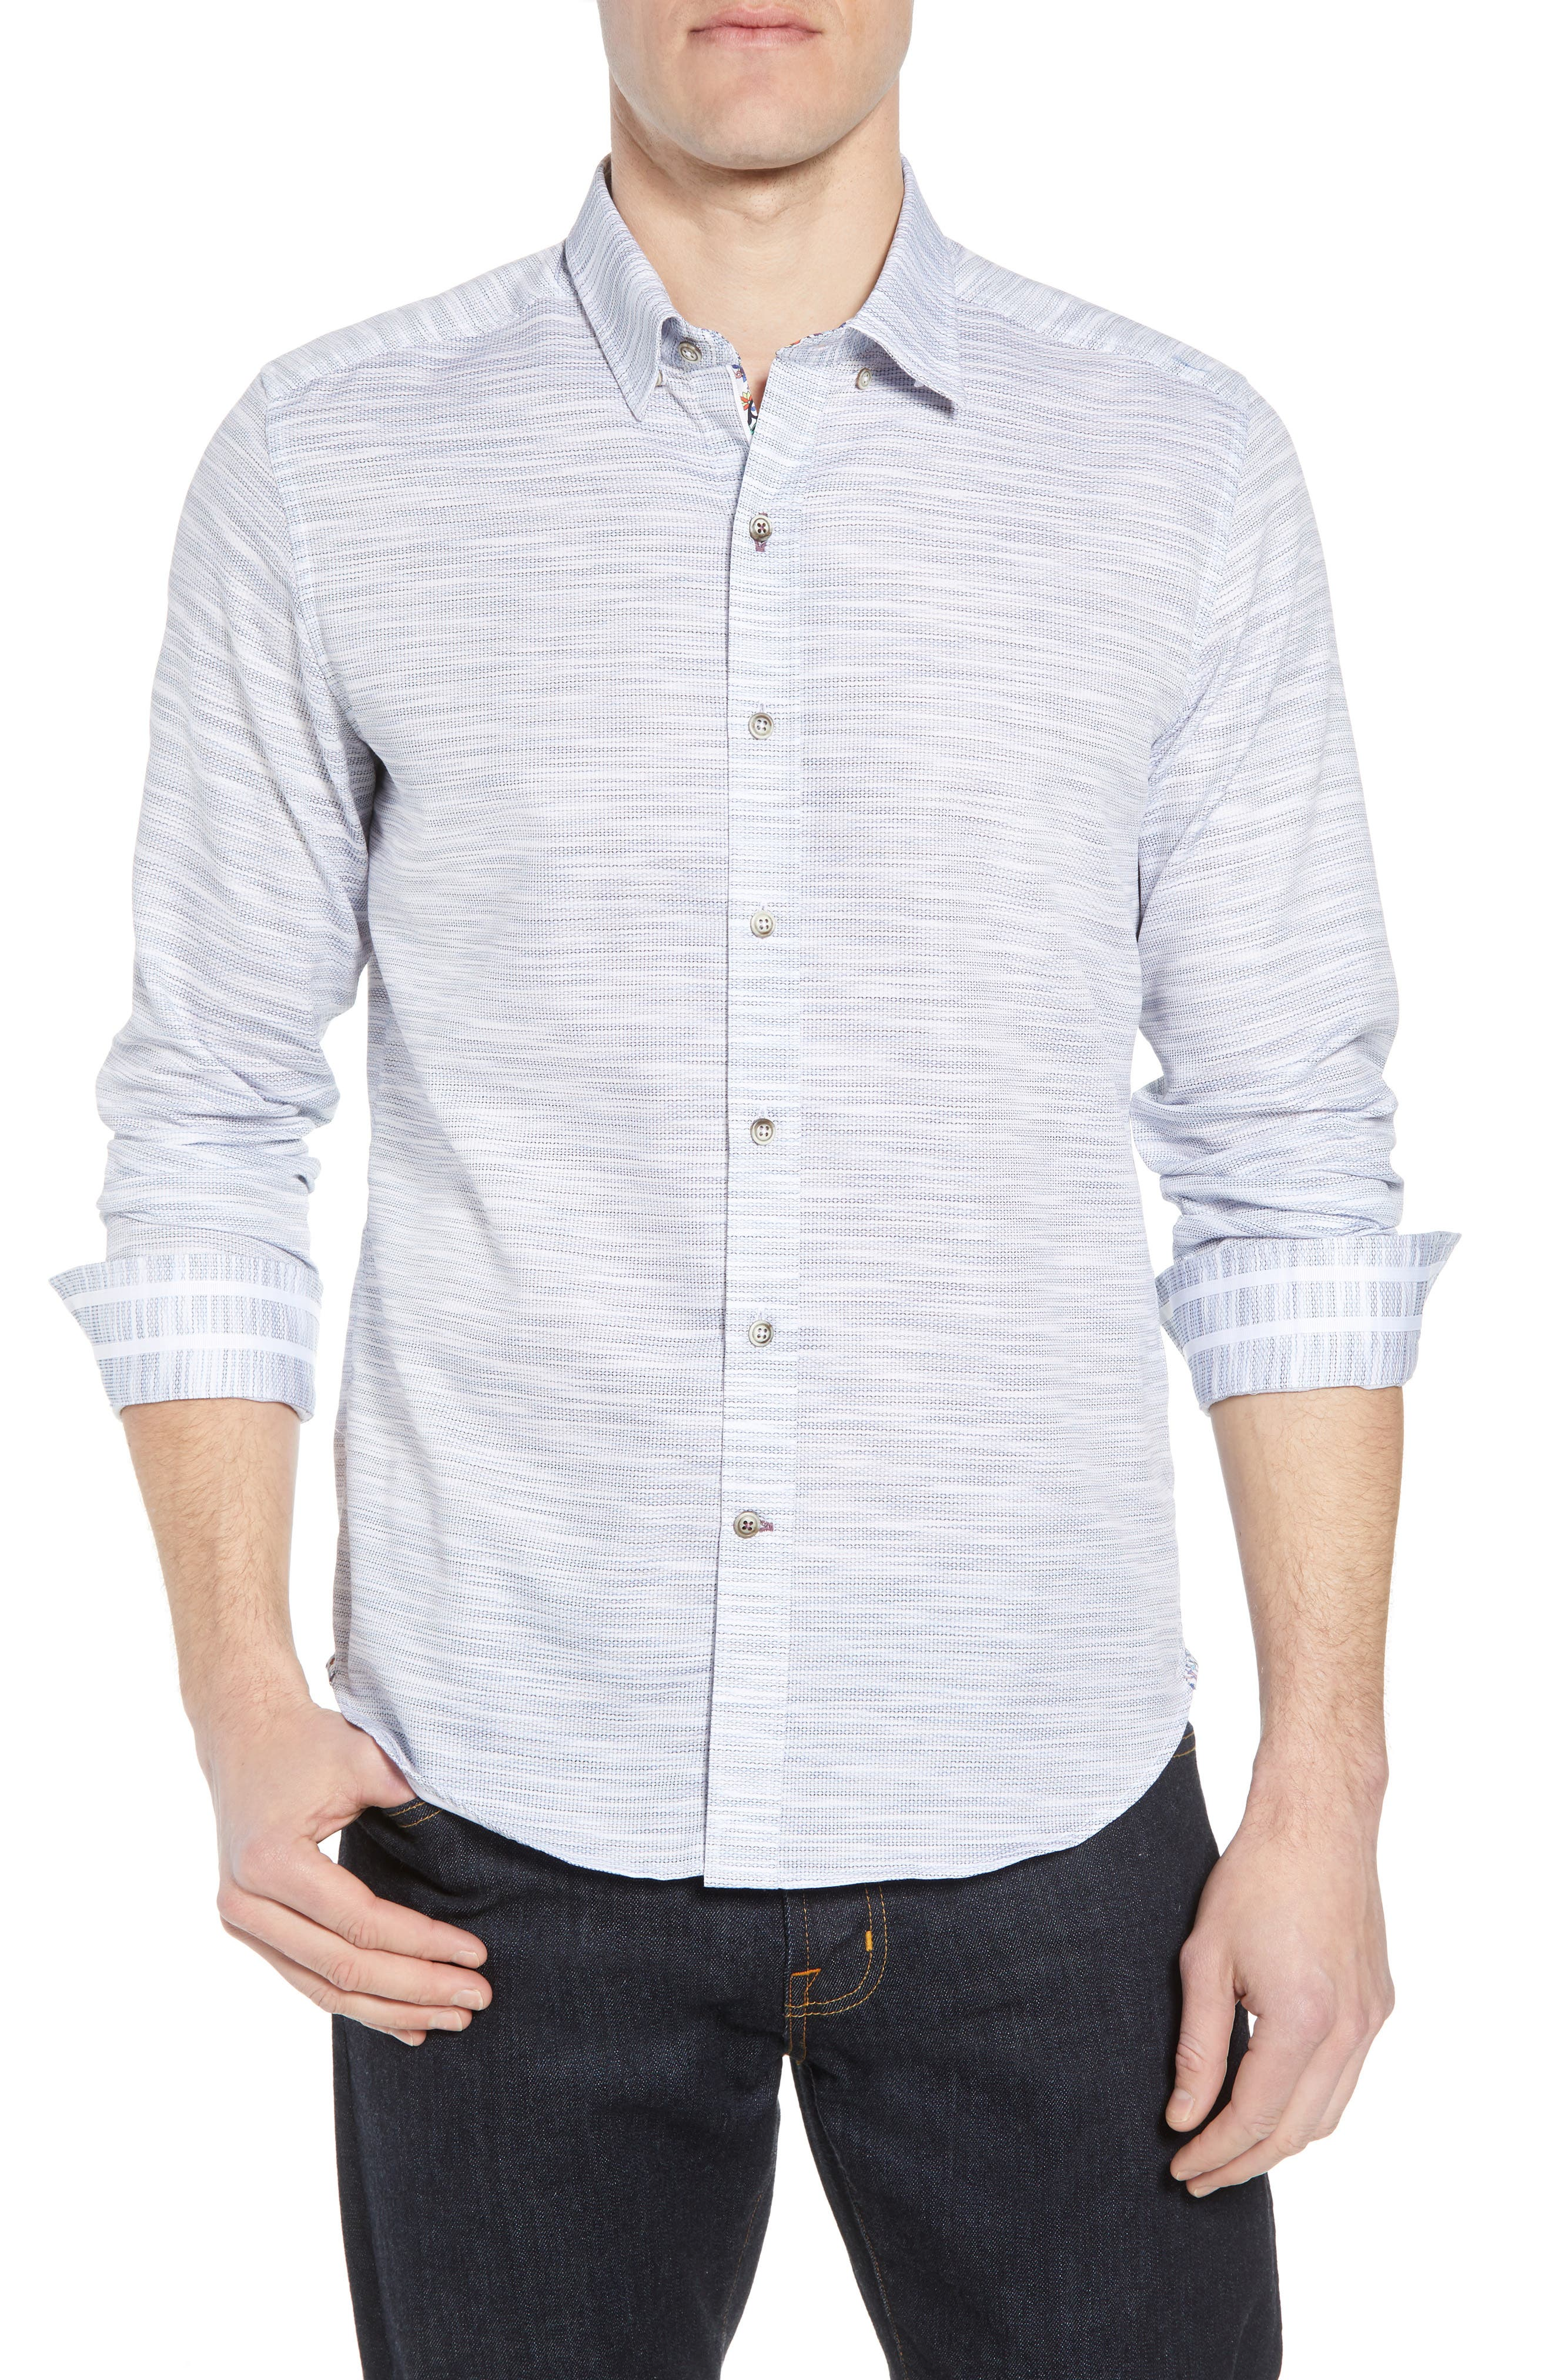 Tully Tailored Fit Sport Shirt,                         Main,                         color, 100